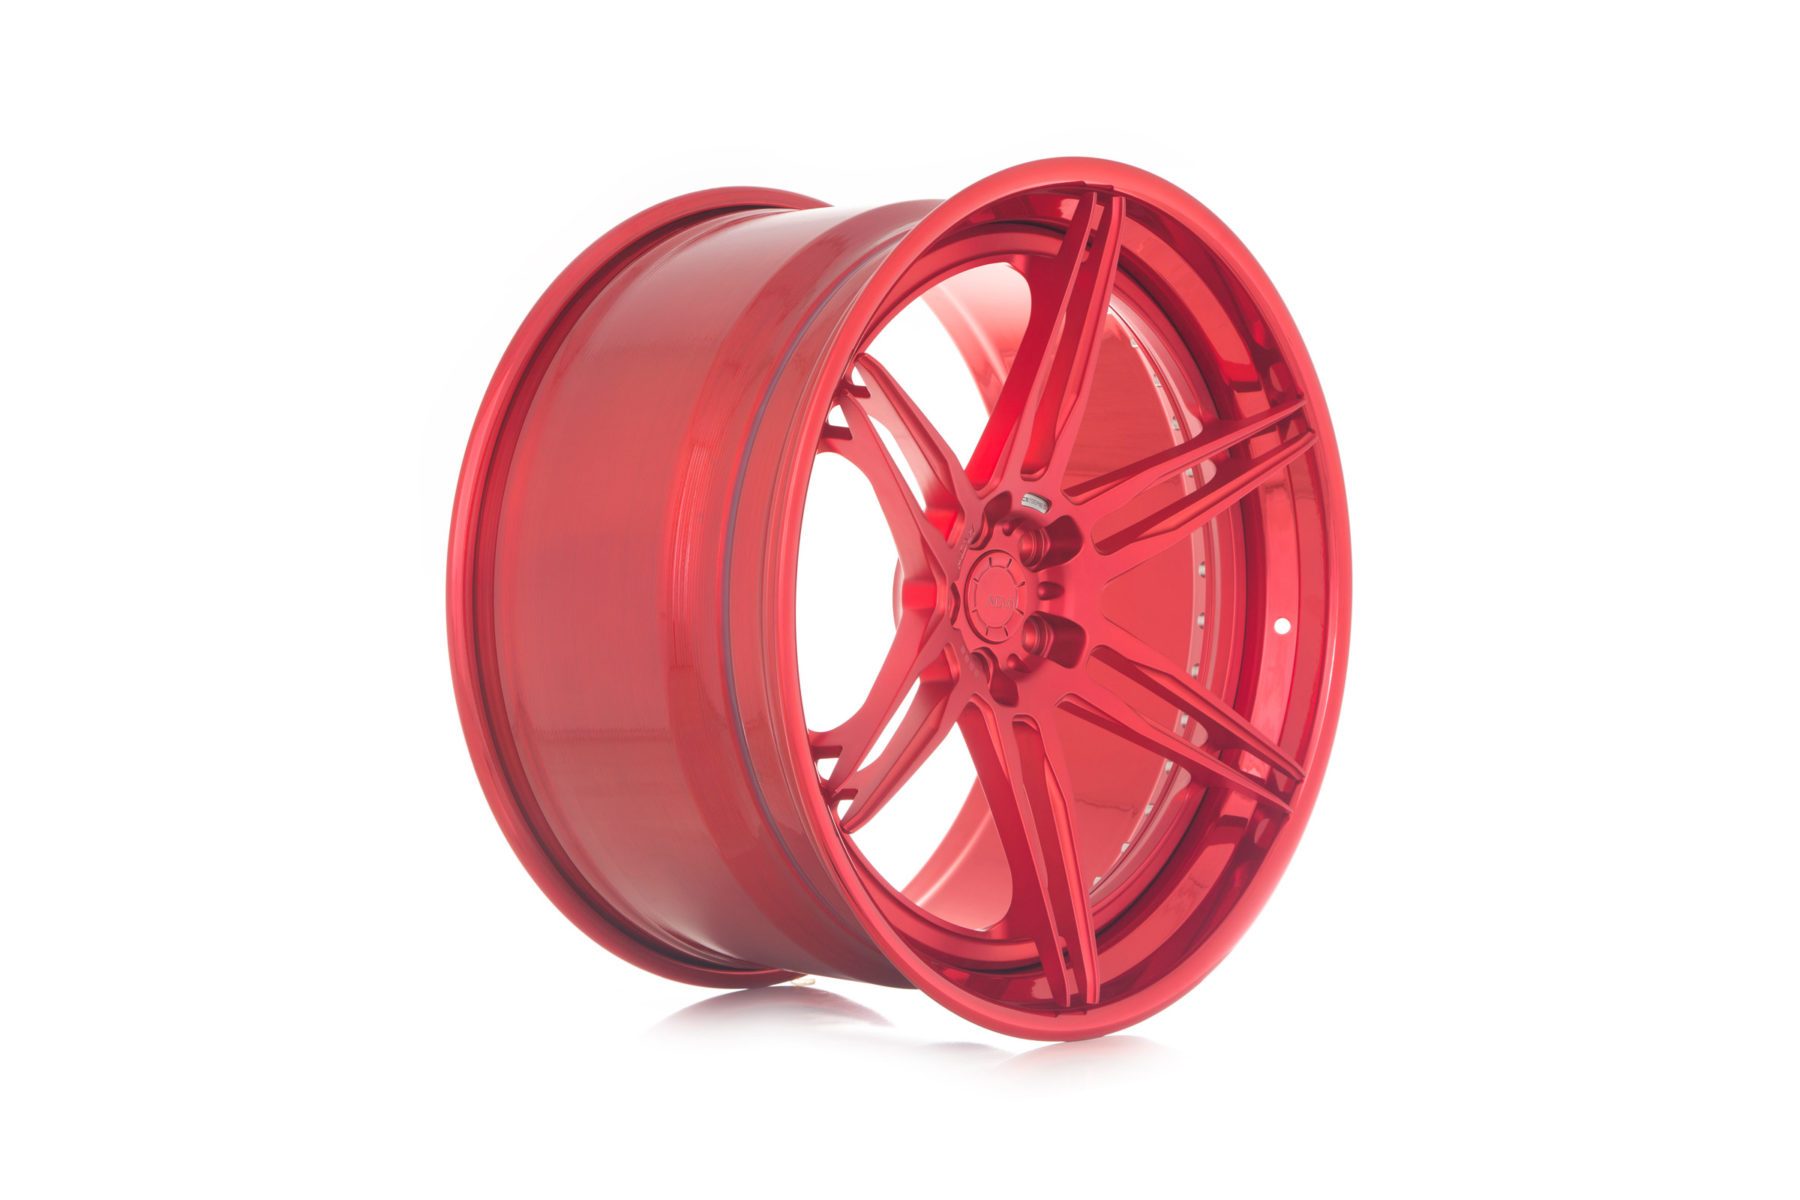 Click to enlarge image adv06-track-spec-cs-polished-aluminum-matte-gloss-red-6-spoke-rims-10-1800x1200.jpg